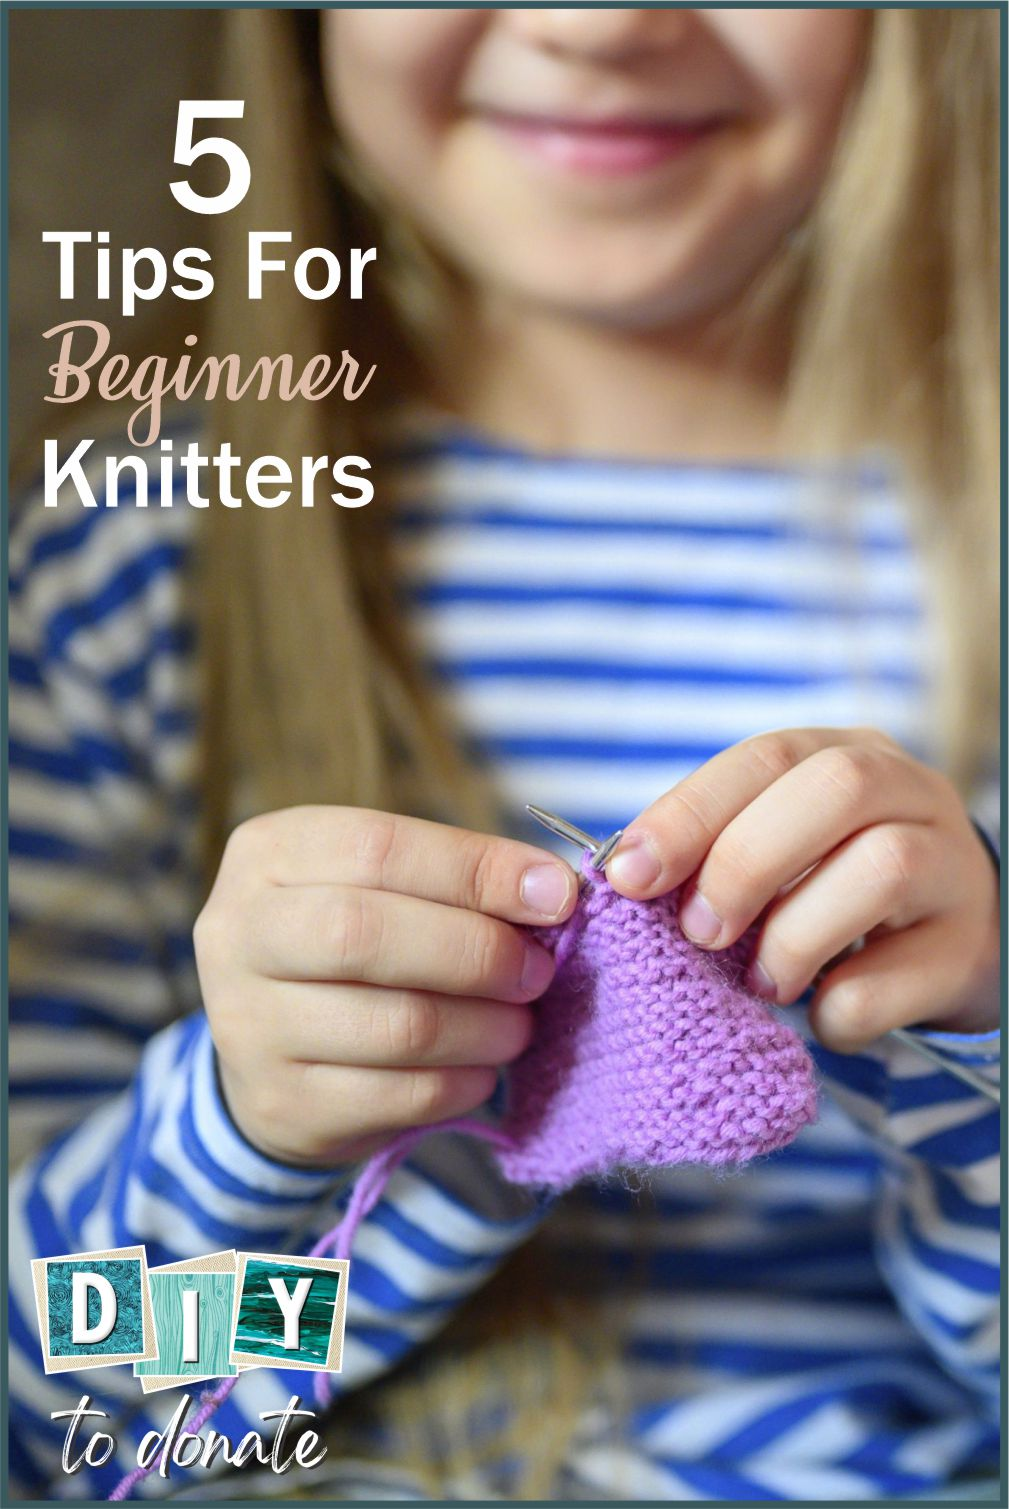 The best beginner knitting tips for children and adults. A must-read for anyone who is ready to start their first knit project. #diytodonate #knitting #crafts #beginner #beginnerknitting #fivetips #tips #mustread #firstproject #project #diy #donate #giveback #communityservice